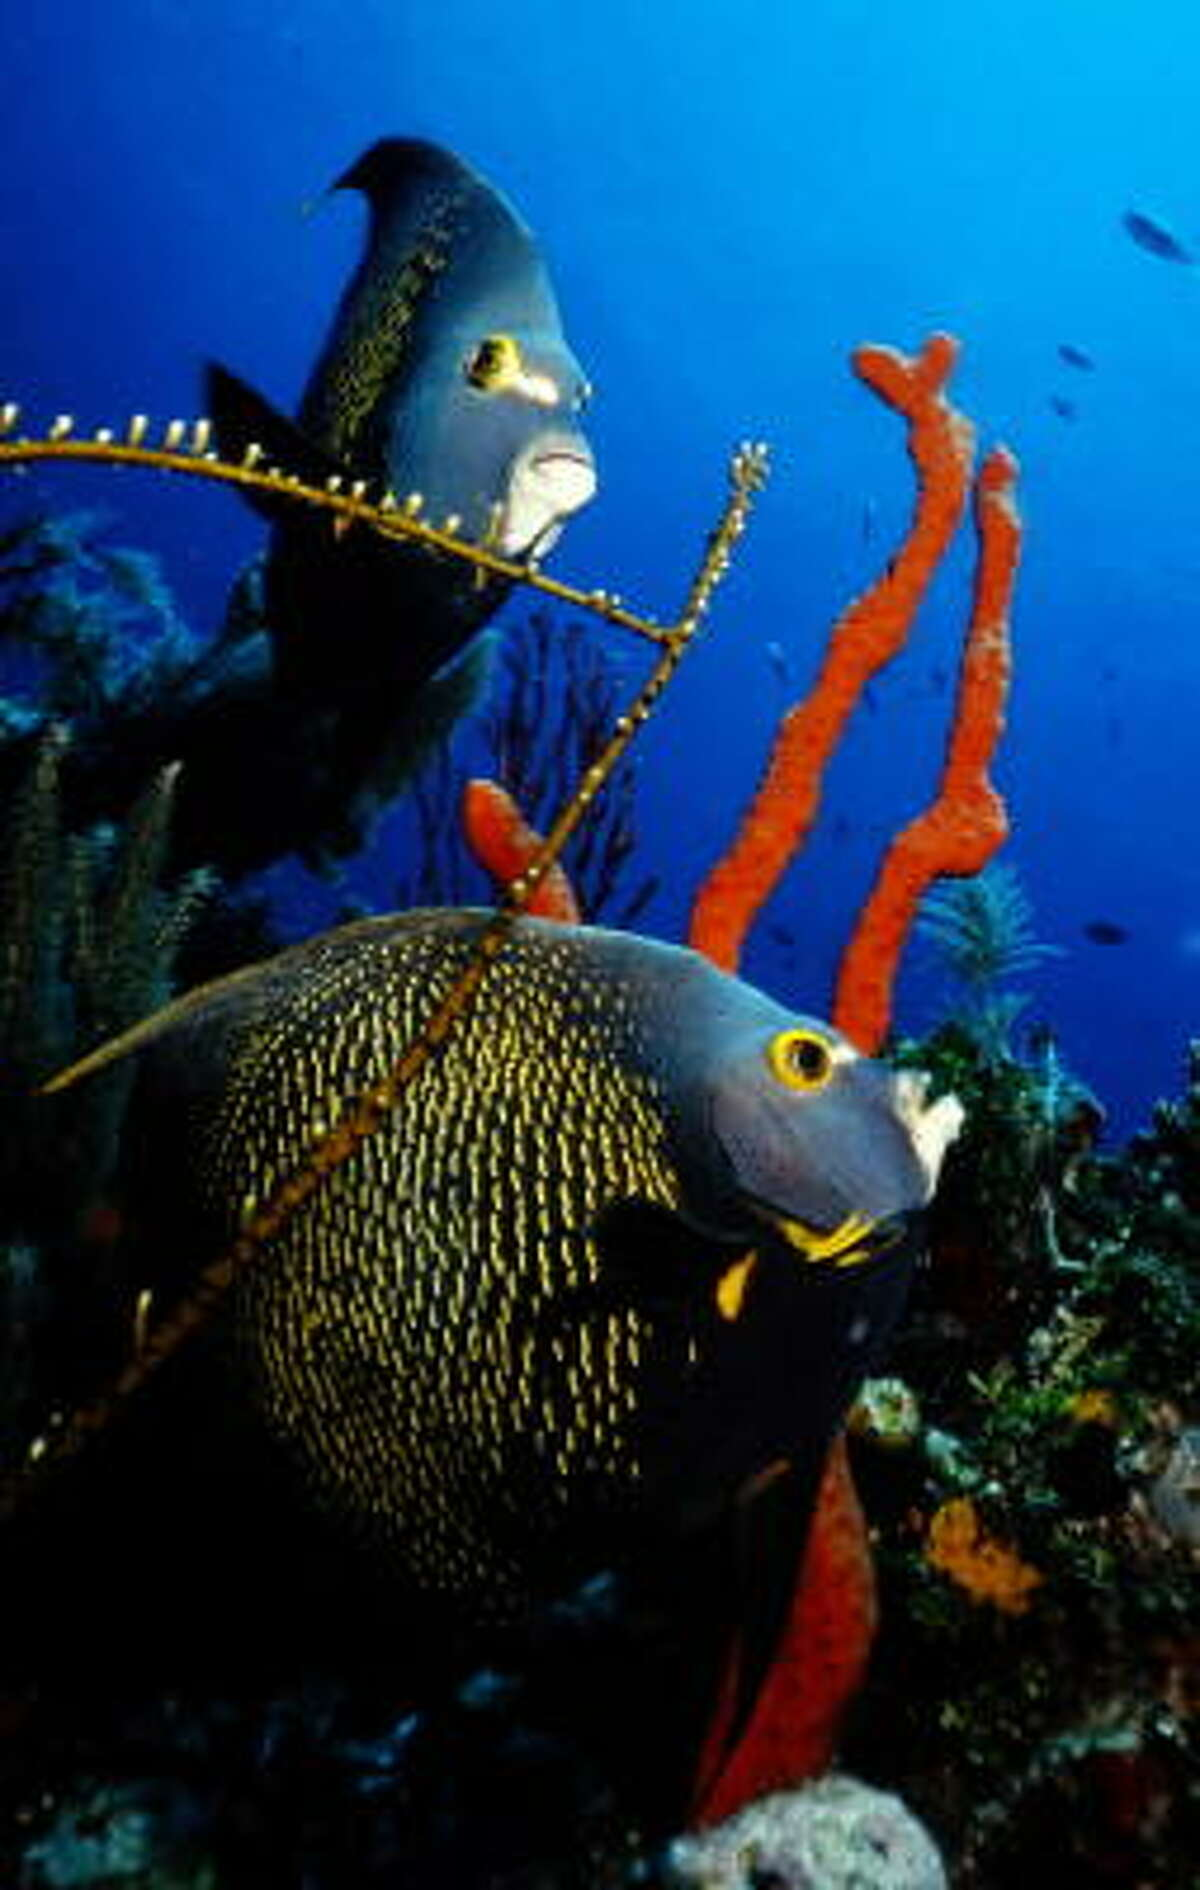 Colorful fish and reef inhabit the waters.